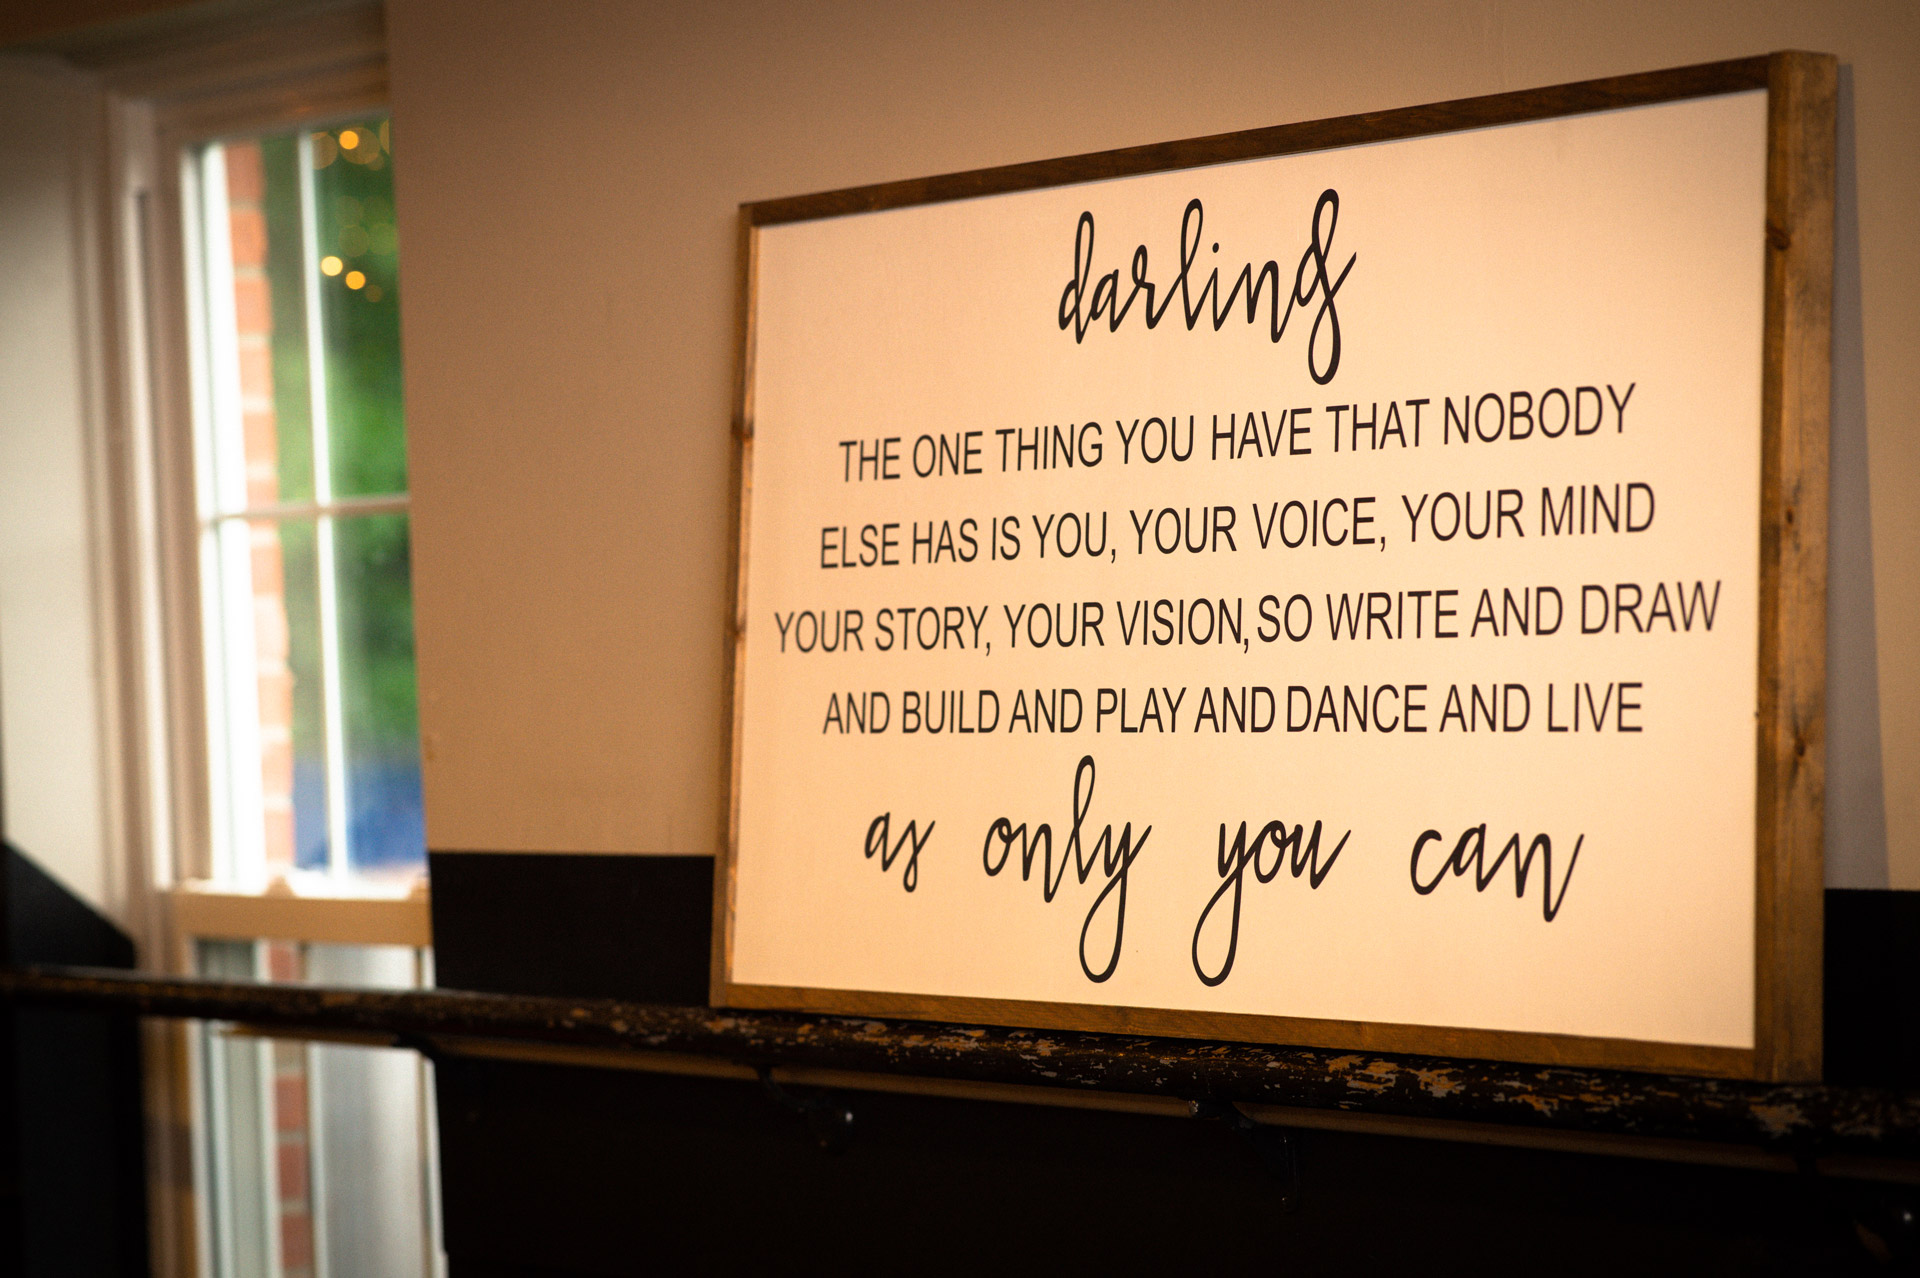 """A sign in Savannah's dance studio that says """"Darling the one thing you have that nobody else has is you, your voice, your mind, your story, your vision, so write and draw and build and play and dance and live as only you can"""""""